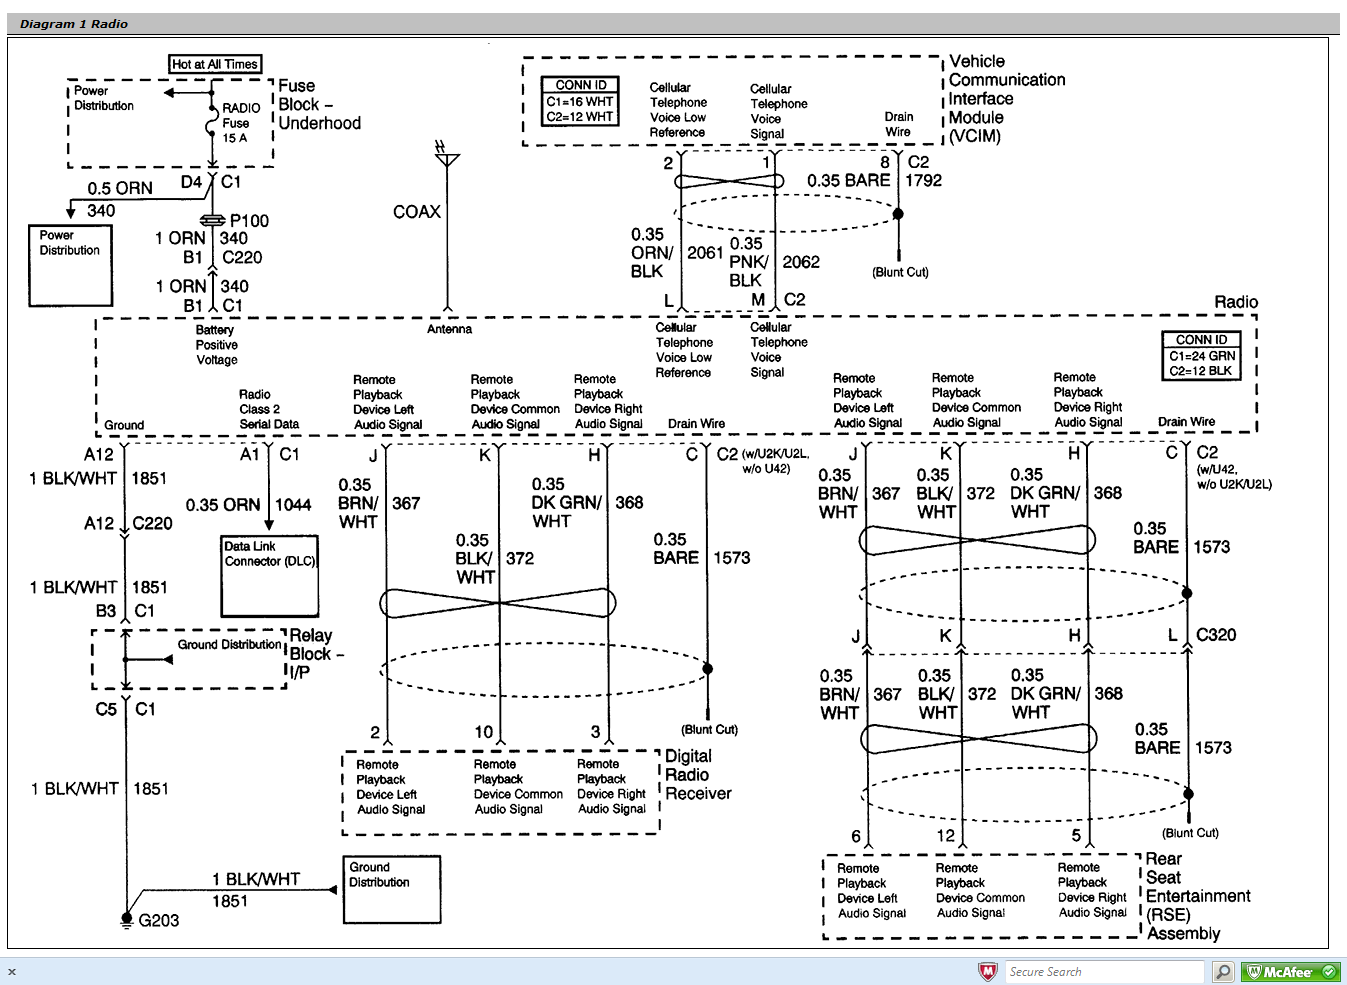 i am trying to find the stereo wiring diagram for a 2003